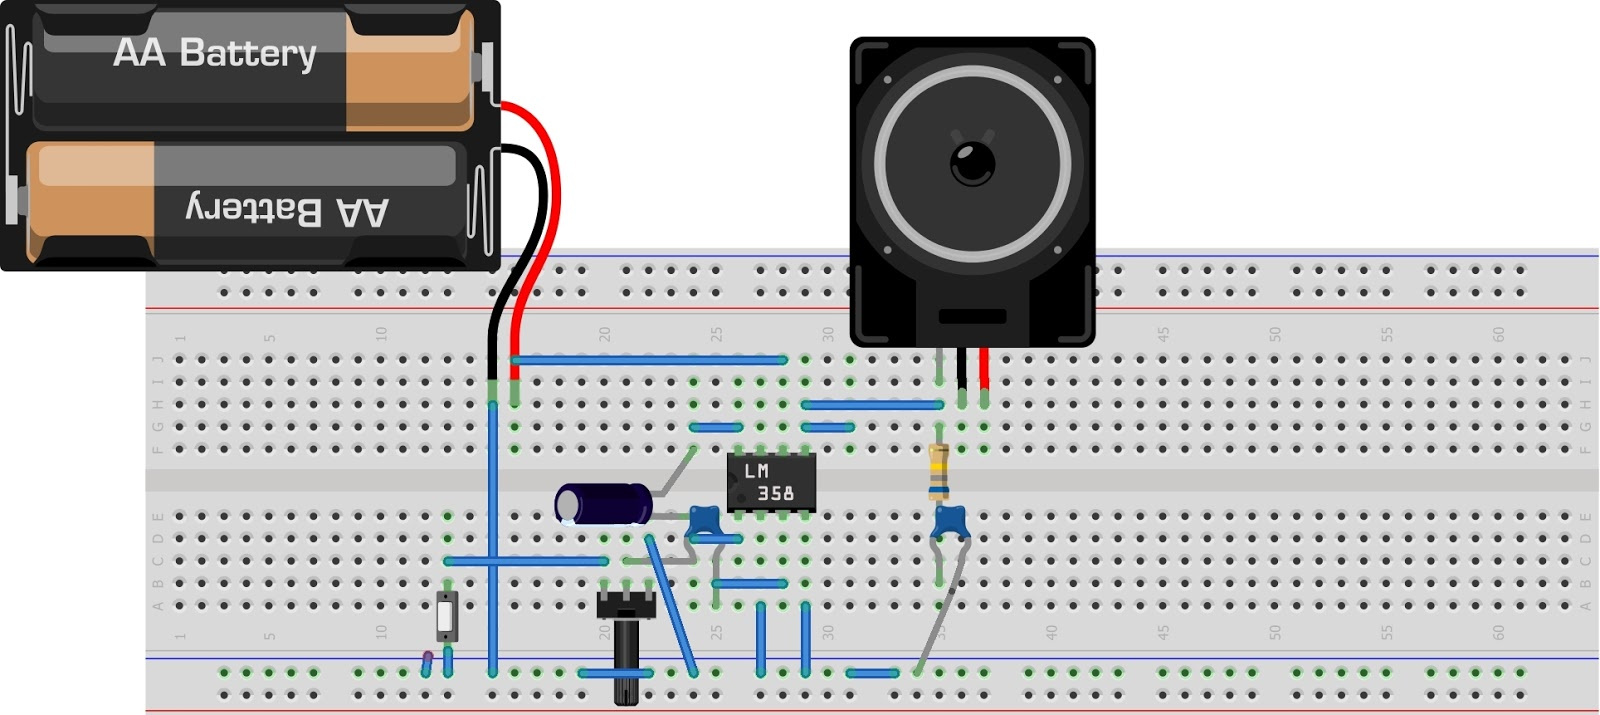 Sam Technology Professionals Electronics Circuitspcb Layouts And Tda2822 Amplifier Circuit Electronic Circuits Diagram A On Breadboard In 3d Export As An Image To Show Your Friends Have Fun Here Is Example Of Audio